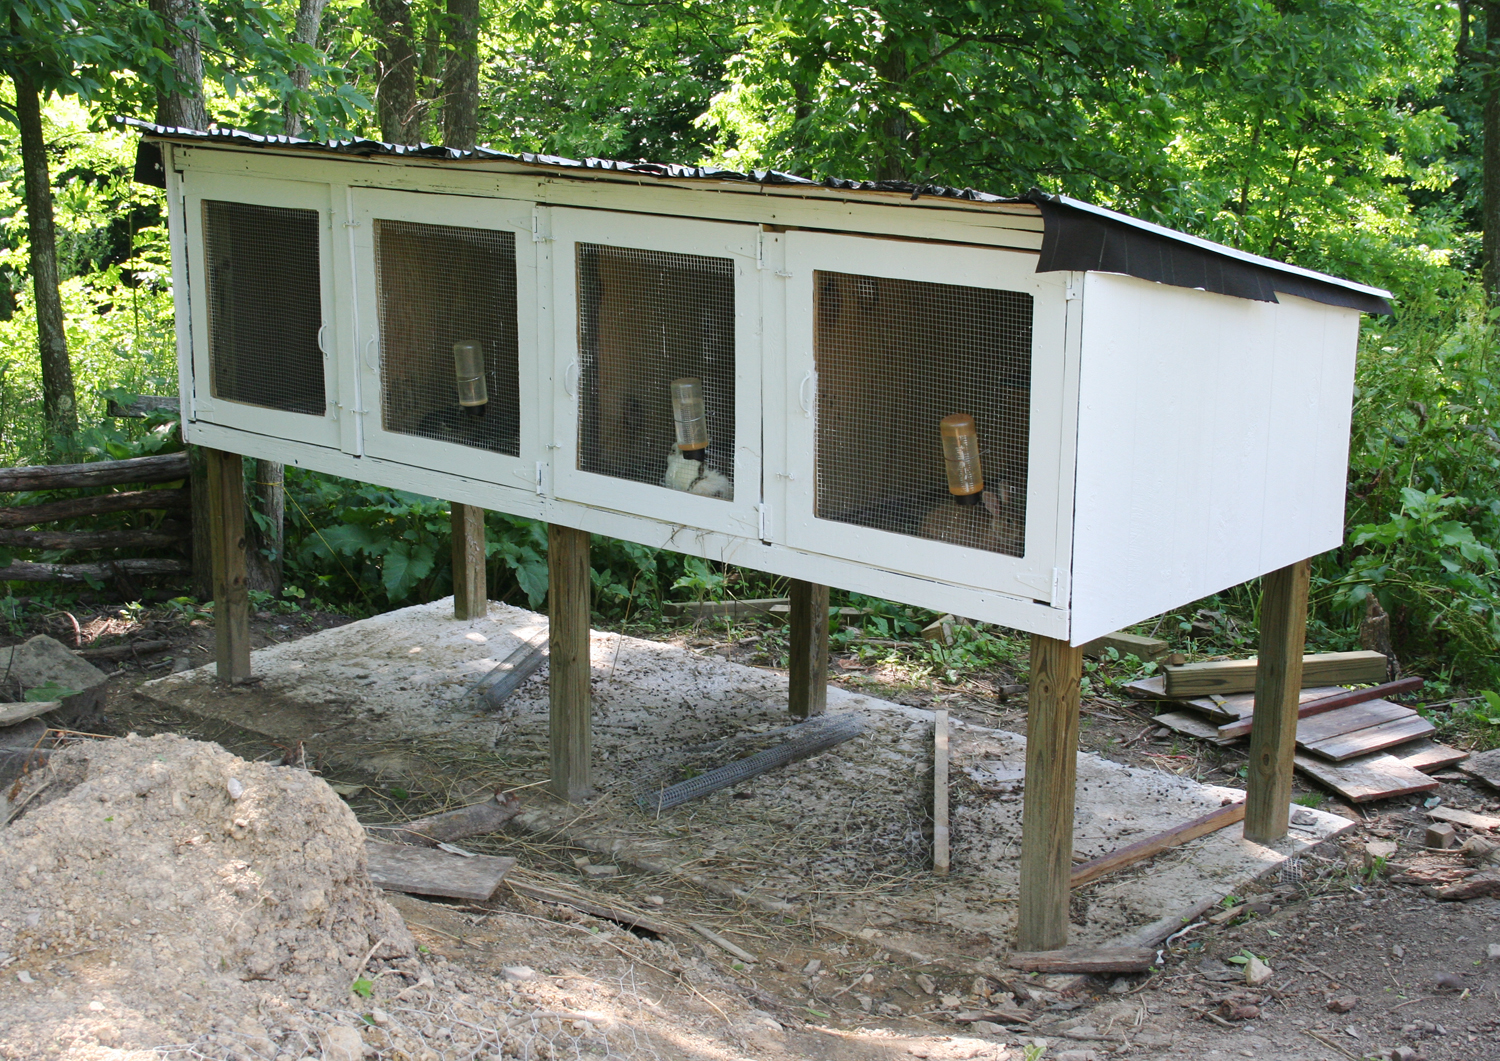 Rabbit+Hutches+Done! Rabbit House Plans To Build on build dog house, build bat house, build a house cat, build tree house, build owl house, build a raccoon house, build fish house, build a bird house, build chicken house, build squirrel house, build a tortoise house, build a goat house,